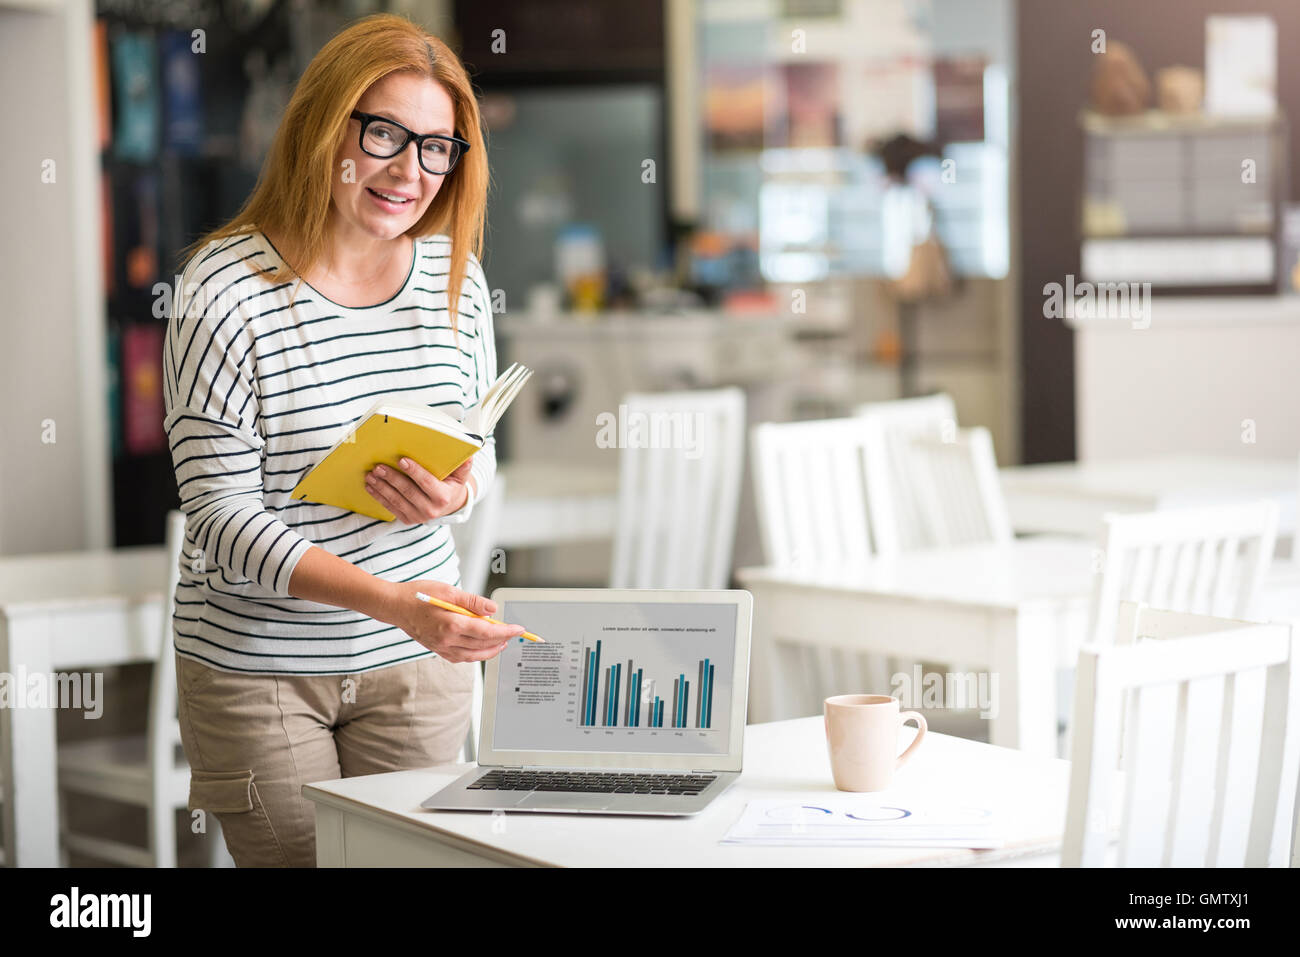 Pleasant positive woman working o the project - Stock Image